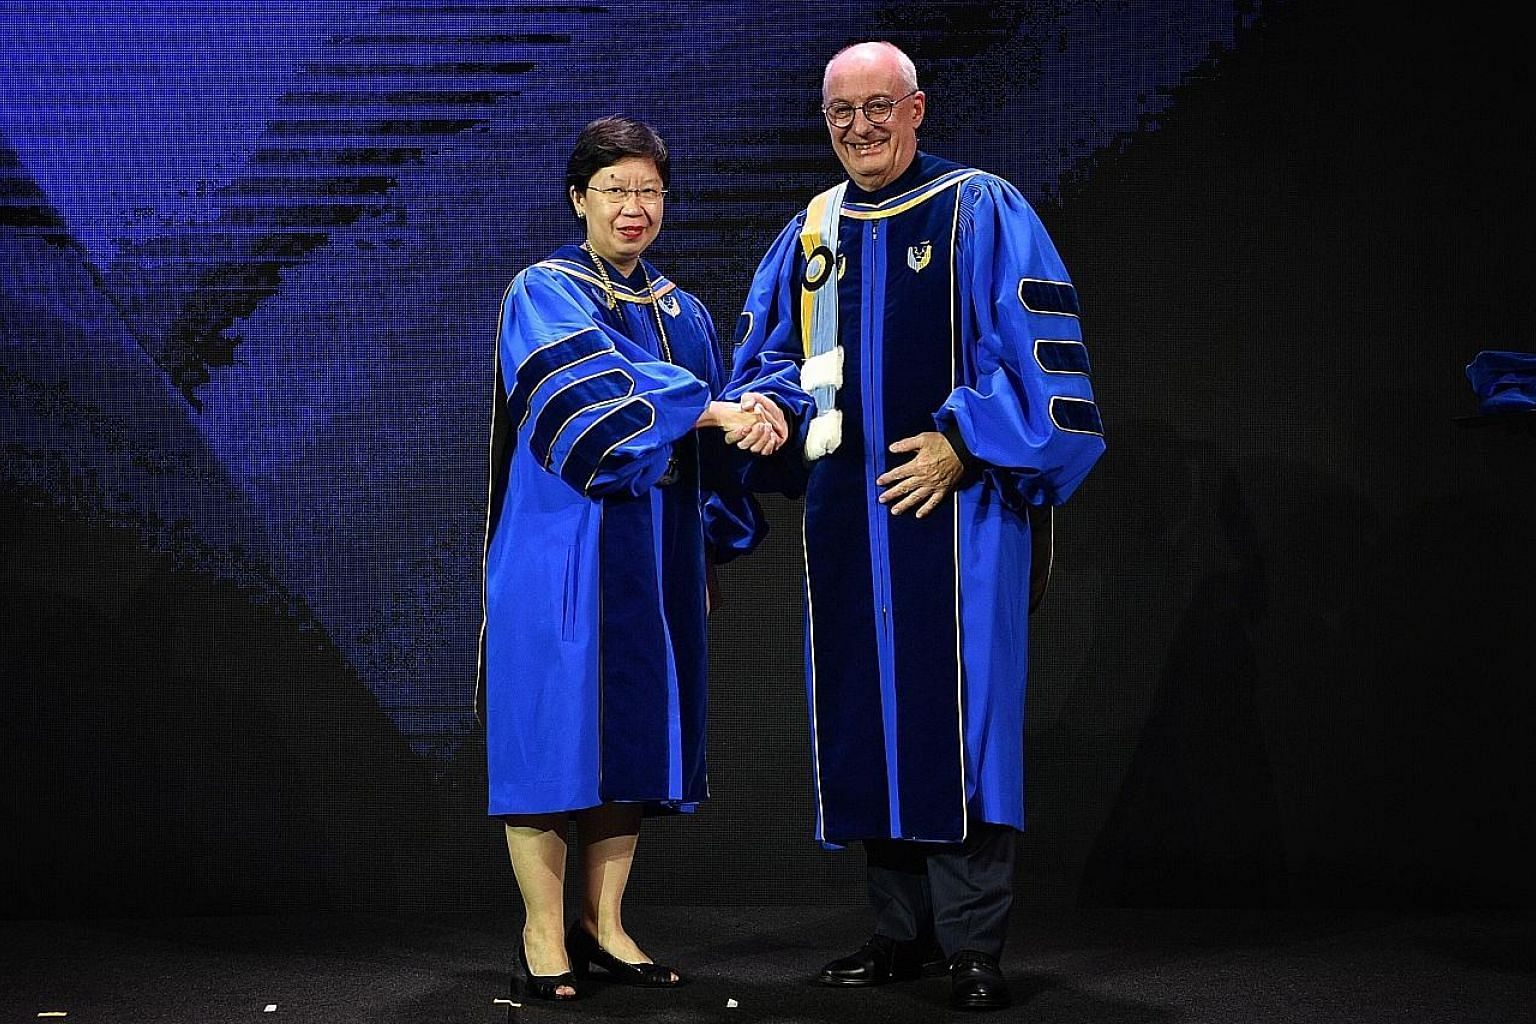 Singapore Management University's outgoing president Arnoud De Meyer and his successor, SMU provost Lily Kong, at a farewell ceremony for the 64-year-old don last night.